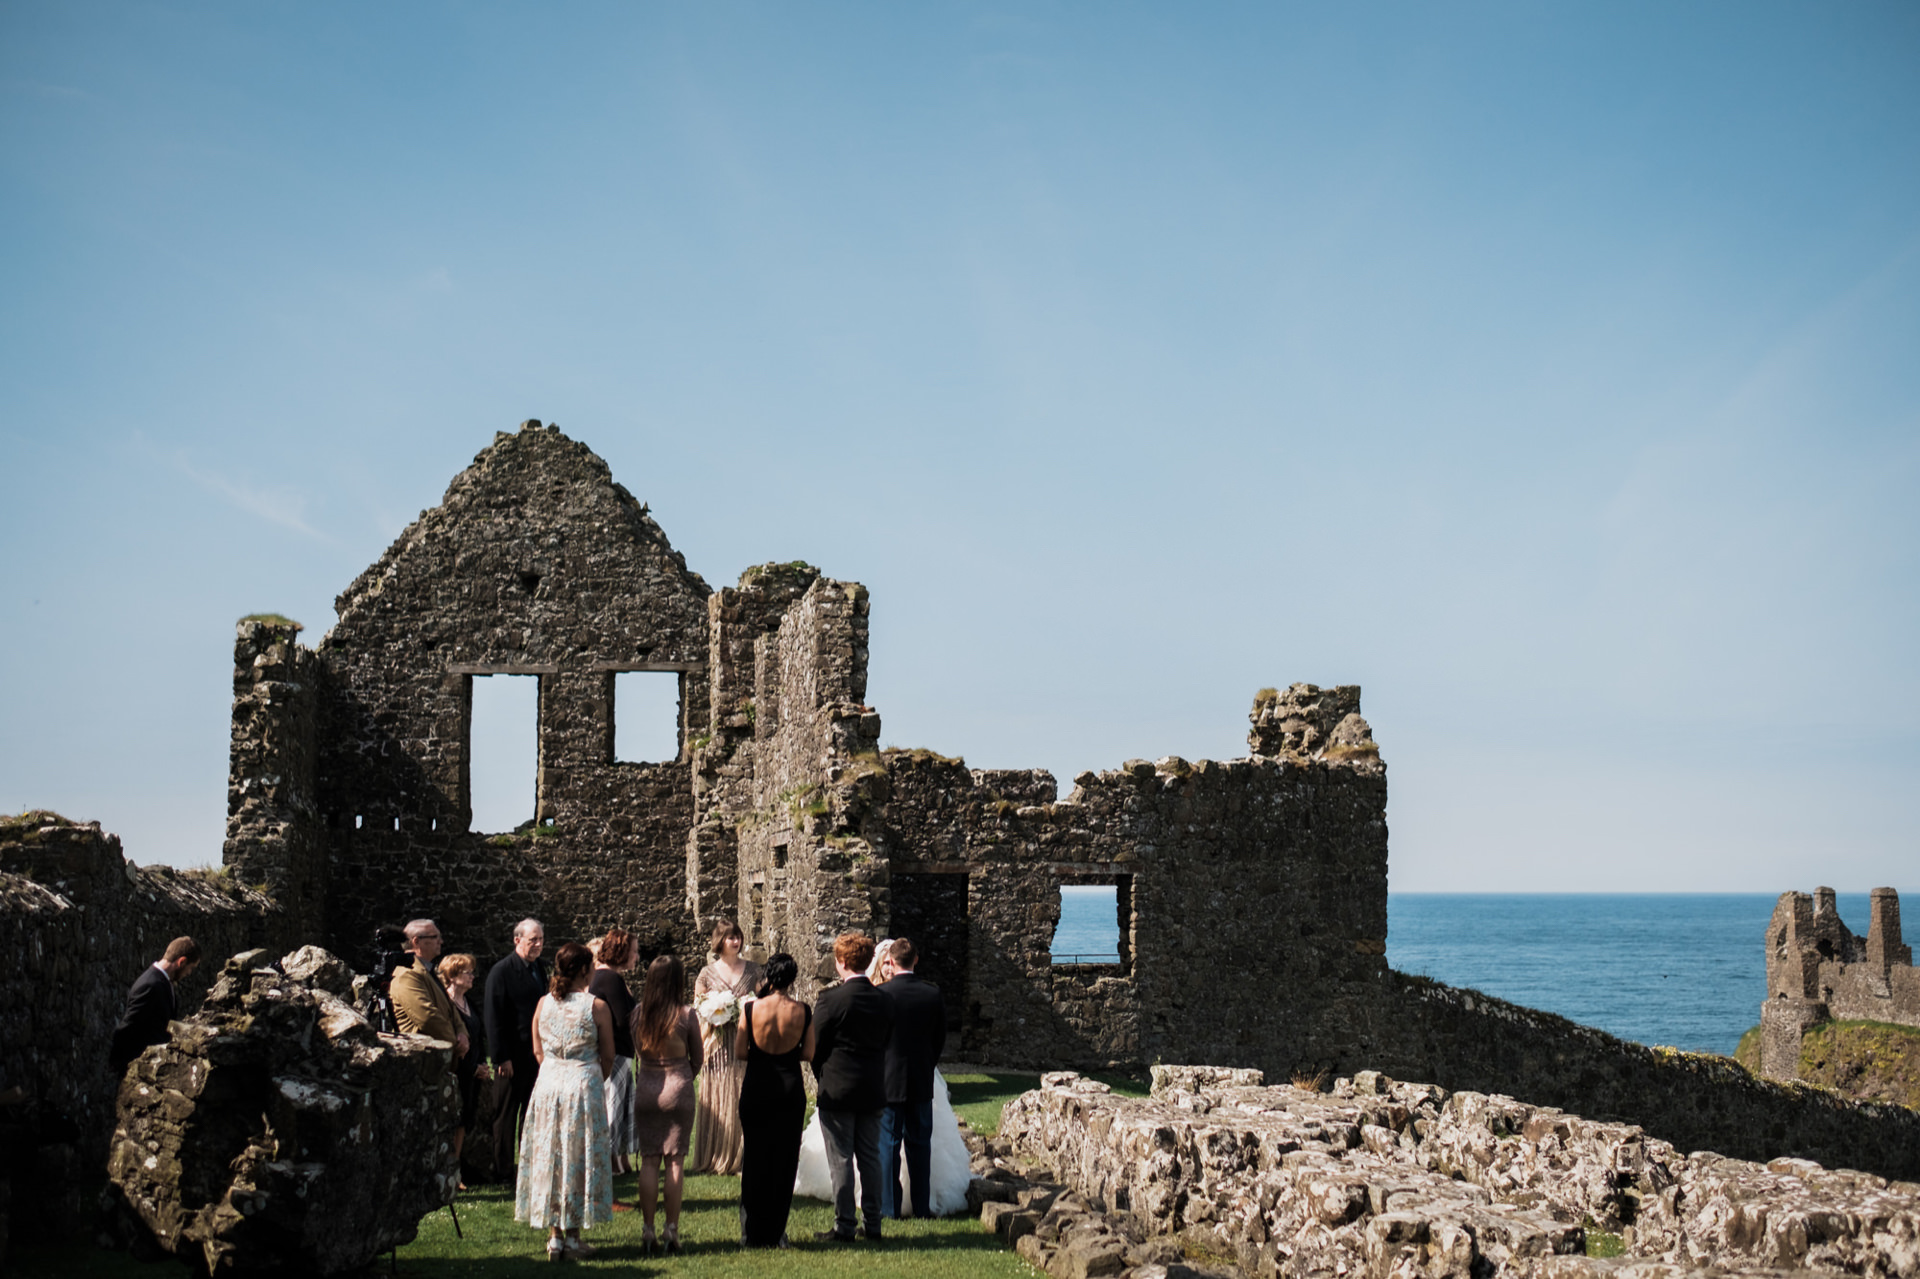 Dunluce Castle weddings in Northern Ireland - Elopement Photography | Wide shot of part of the ruins of Dunluce Castle